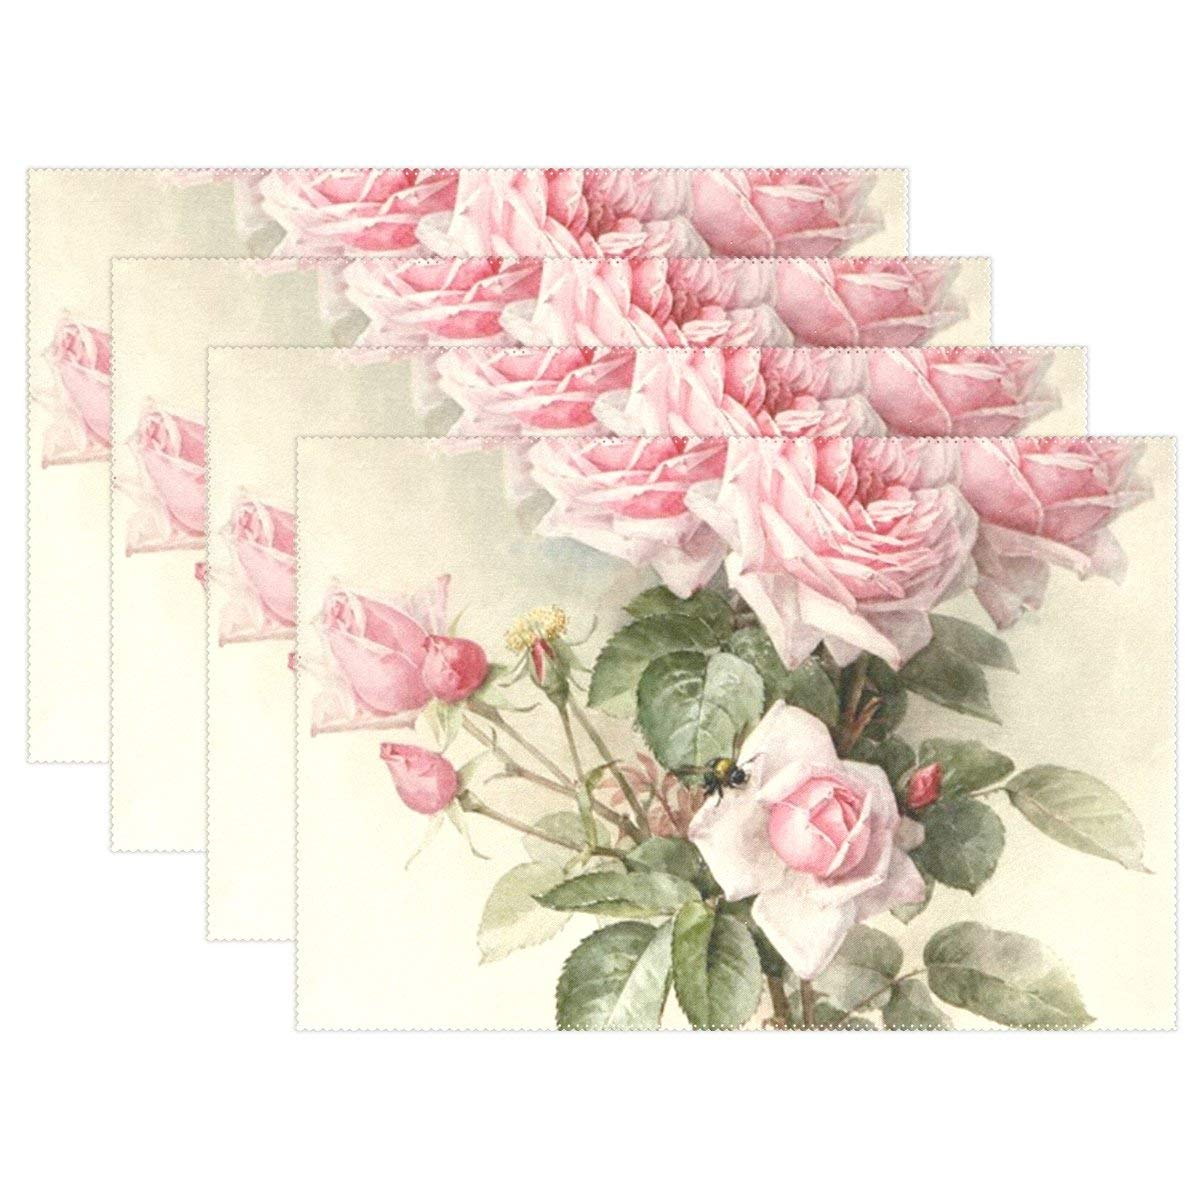 Cheap Polyester Dining Table Mat Find Polyester Dining Table Mat Deals On Line At Alibaba Com